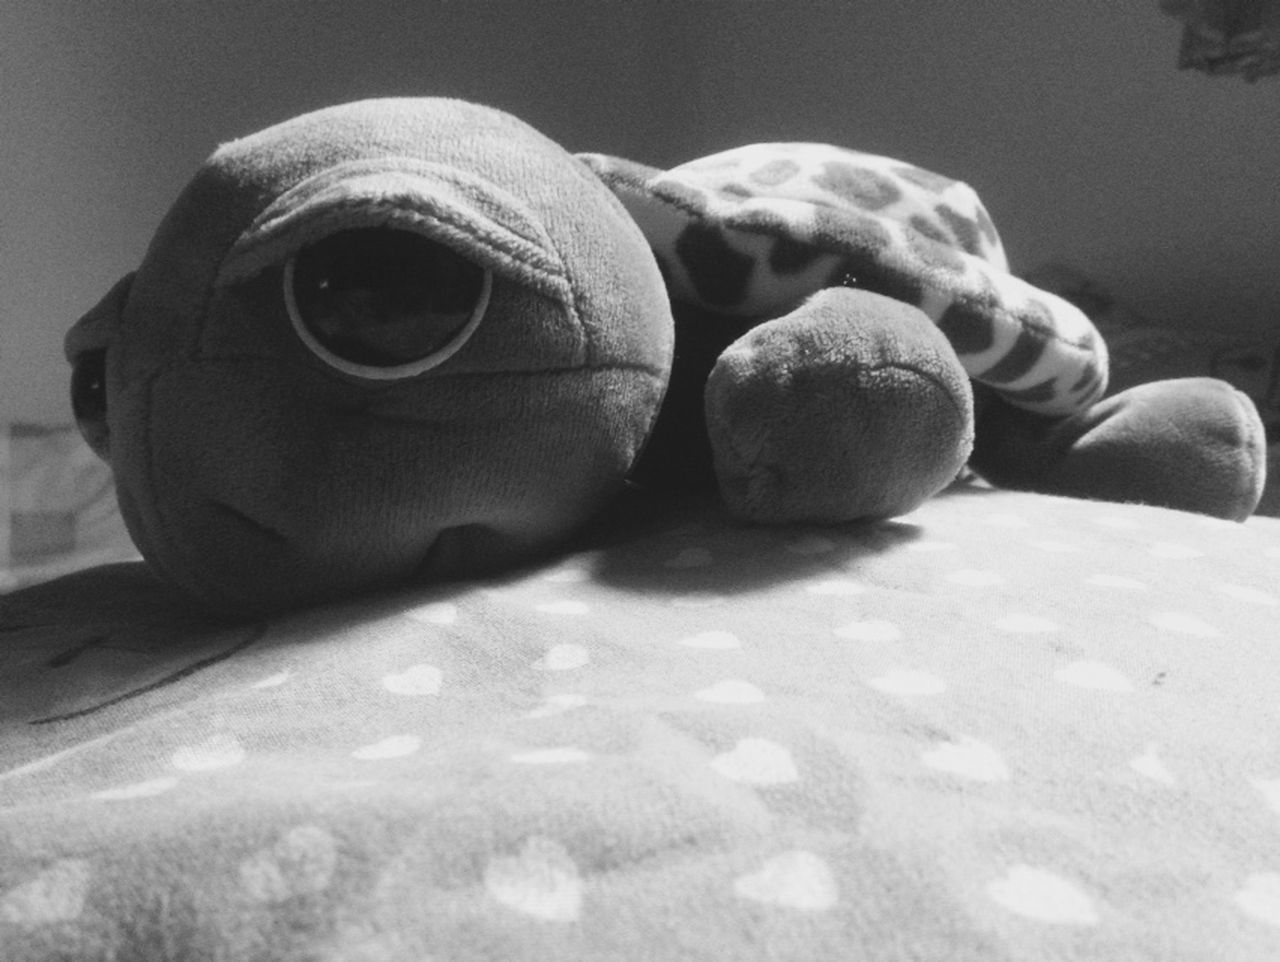 indoors, childhood, no people, close-up, stuffed toy, bed, day